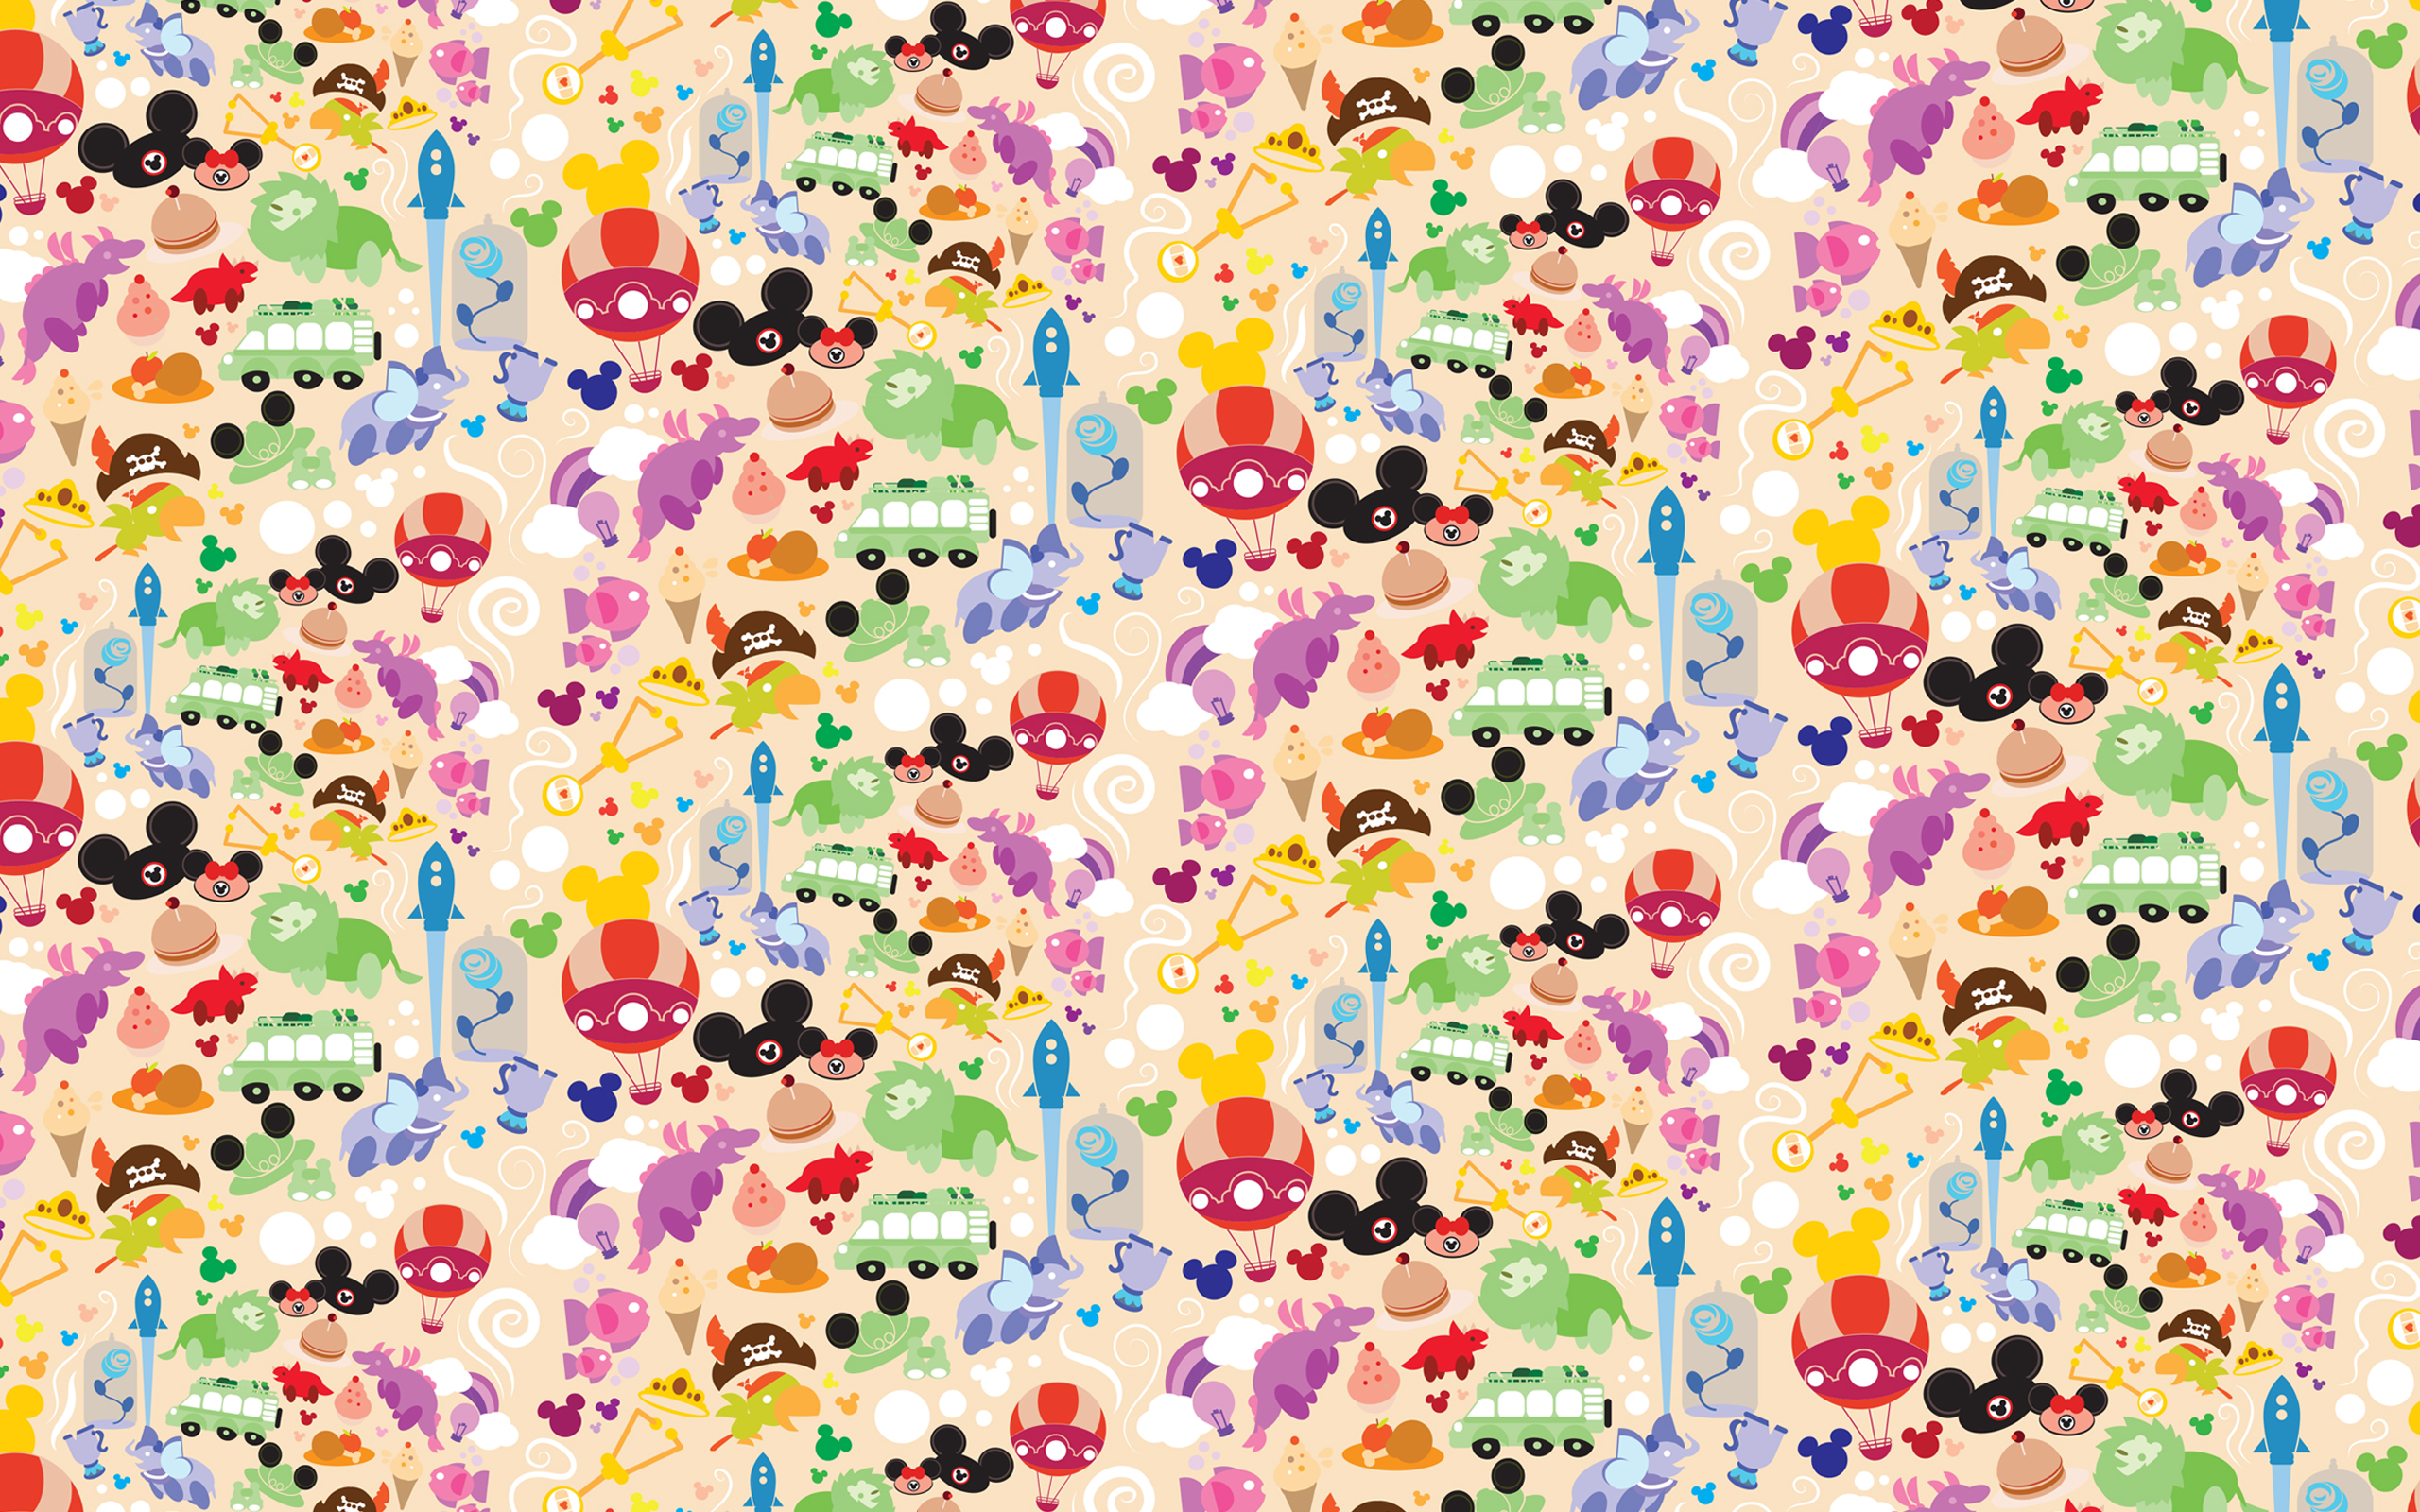 Cute Wallpapers For Springtime Wallpapers 171 Disney Parks Blog